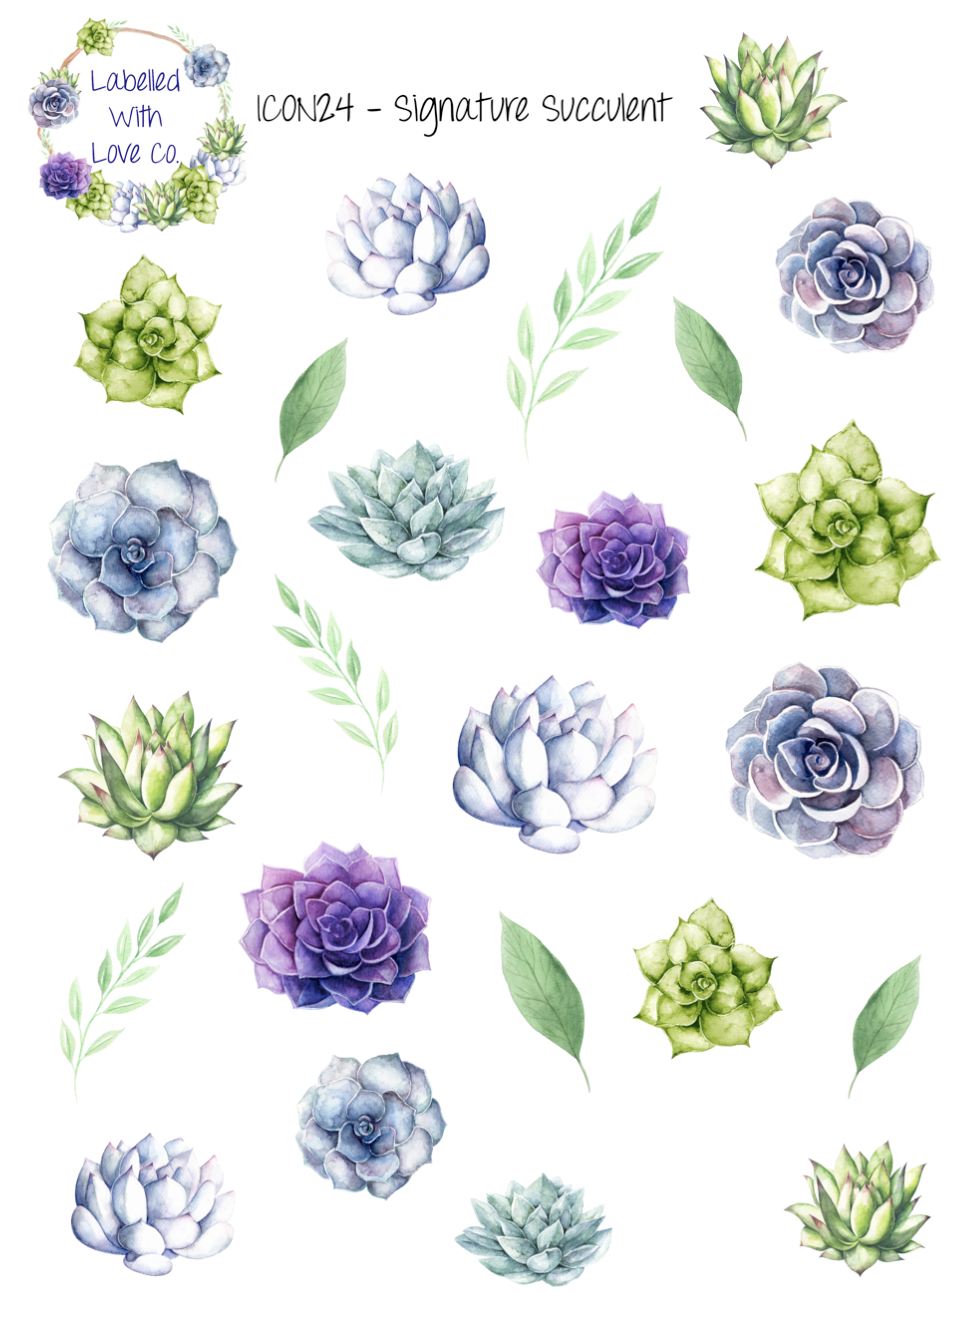 Flowers clipart stickers for email free signature. Icon succulent planner